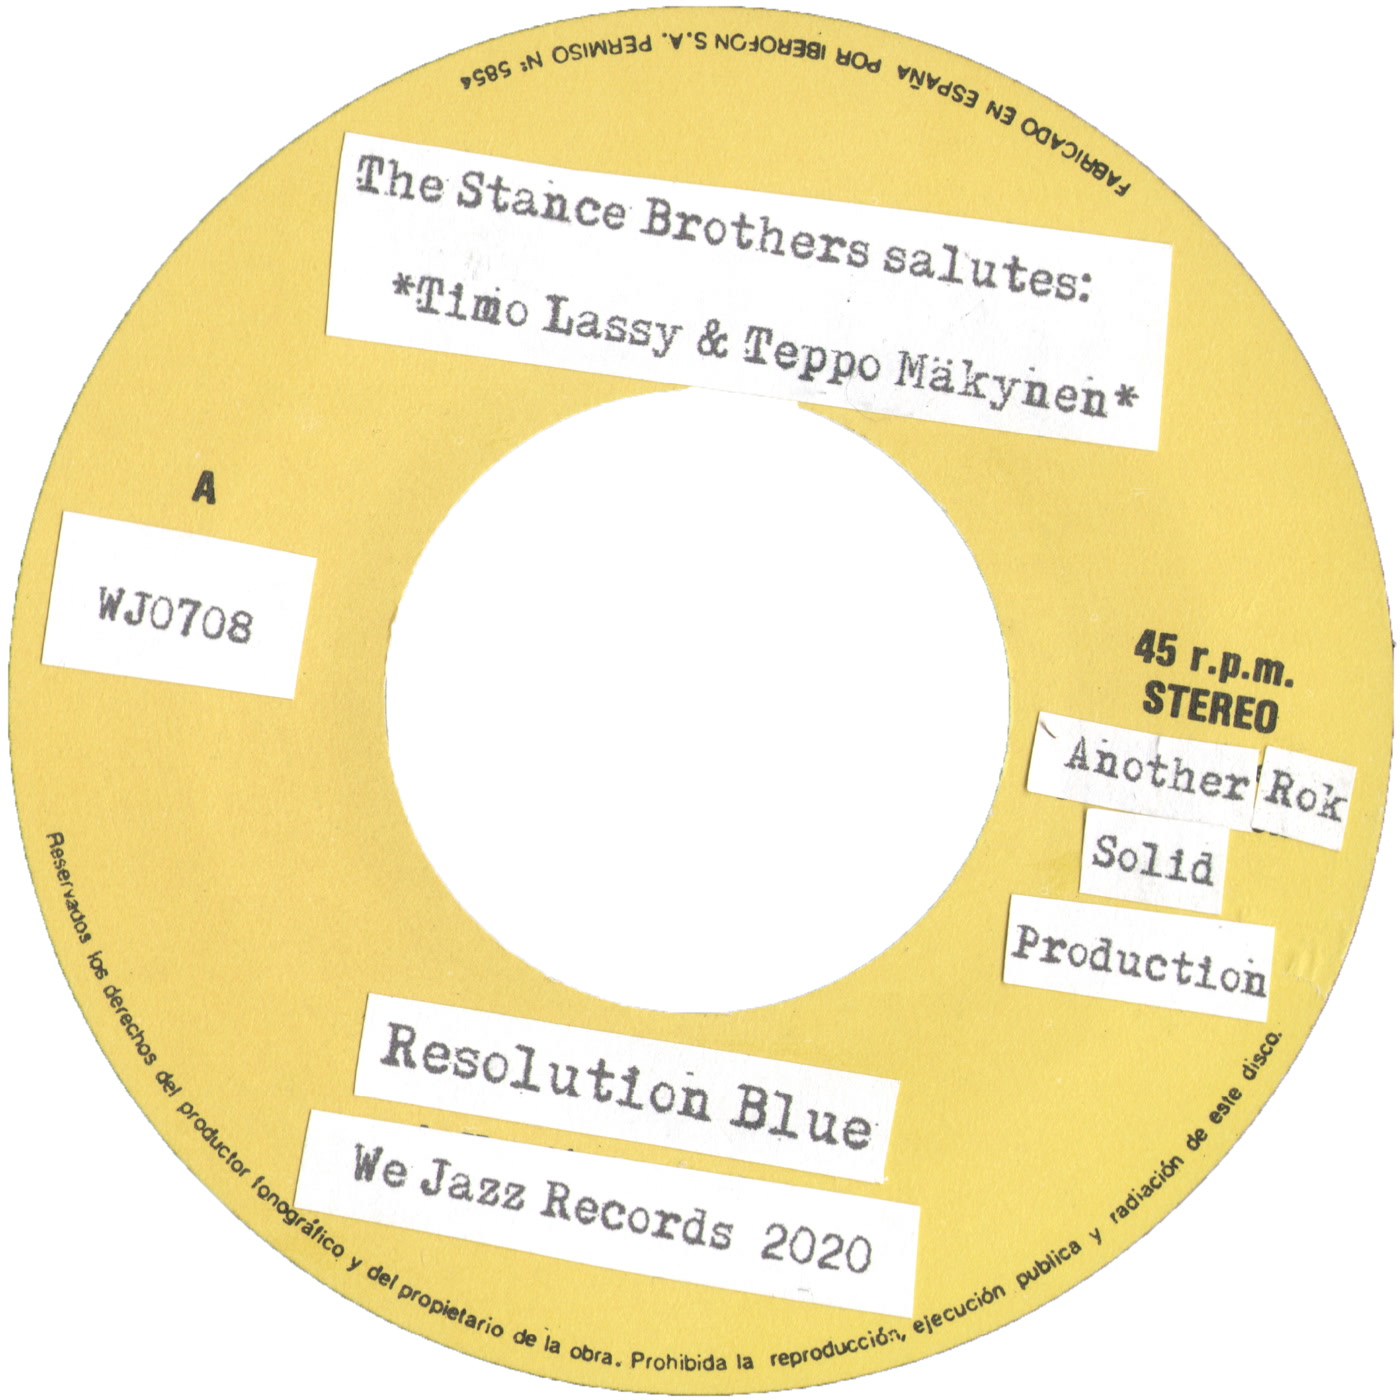 The Stance Brothers – Resolution Blue (We Jazz)